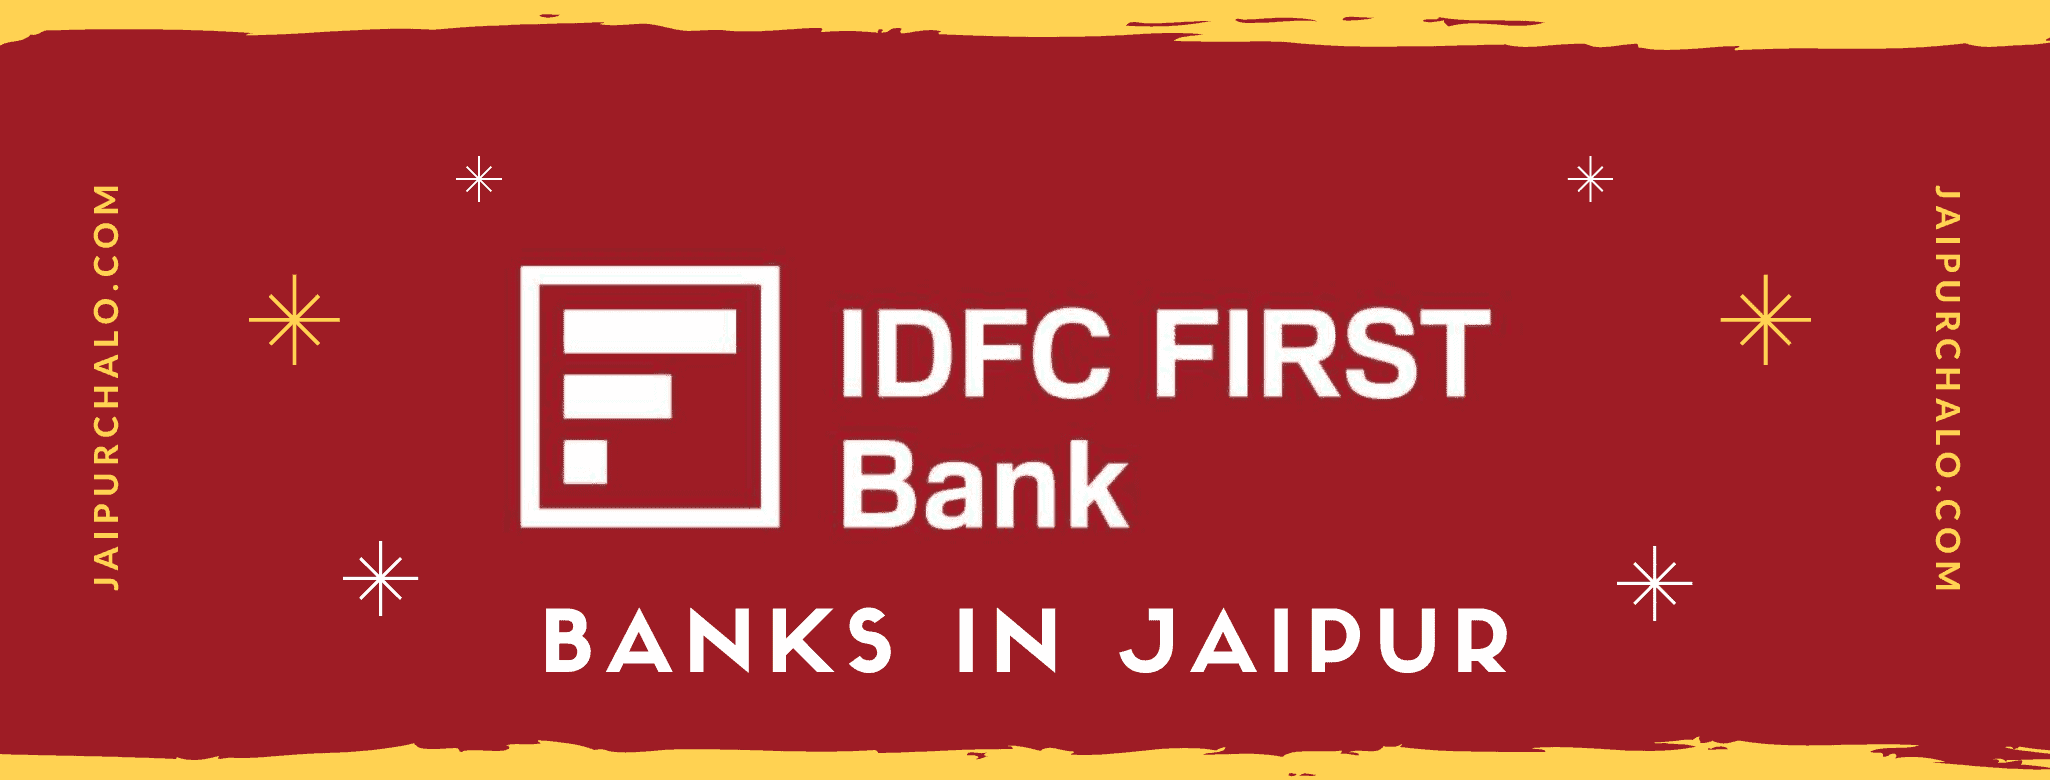 idfc bank in Jaipur